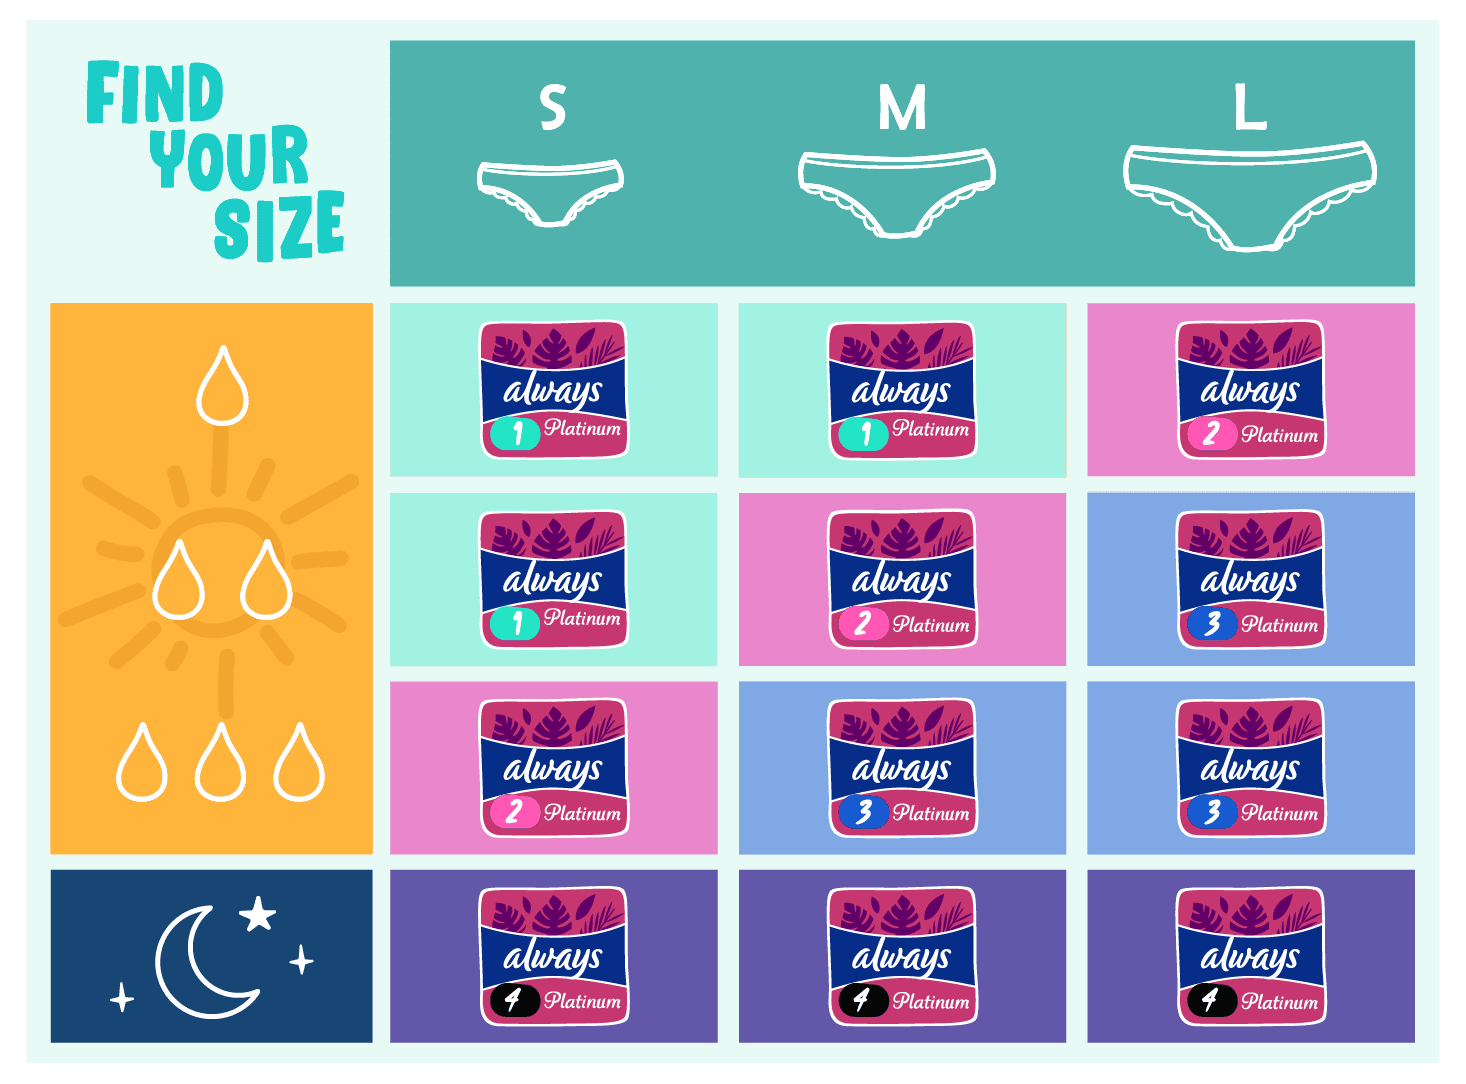 Always MY FIT product size chart